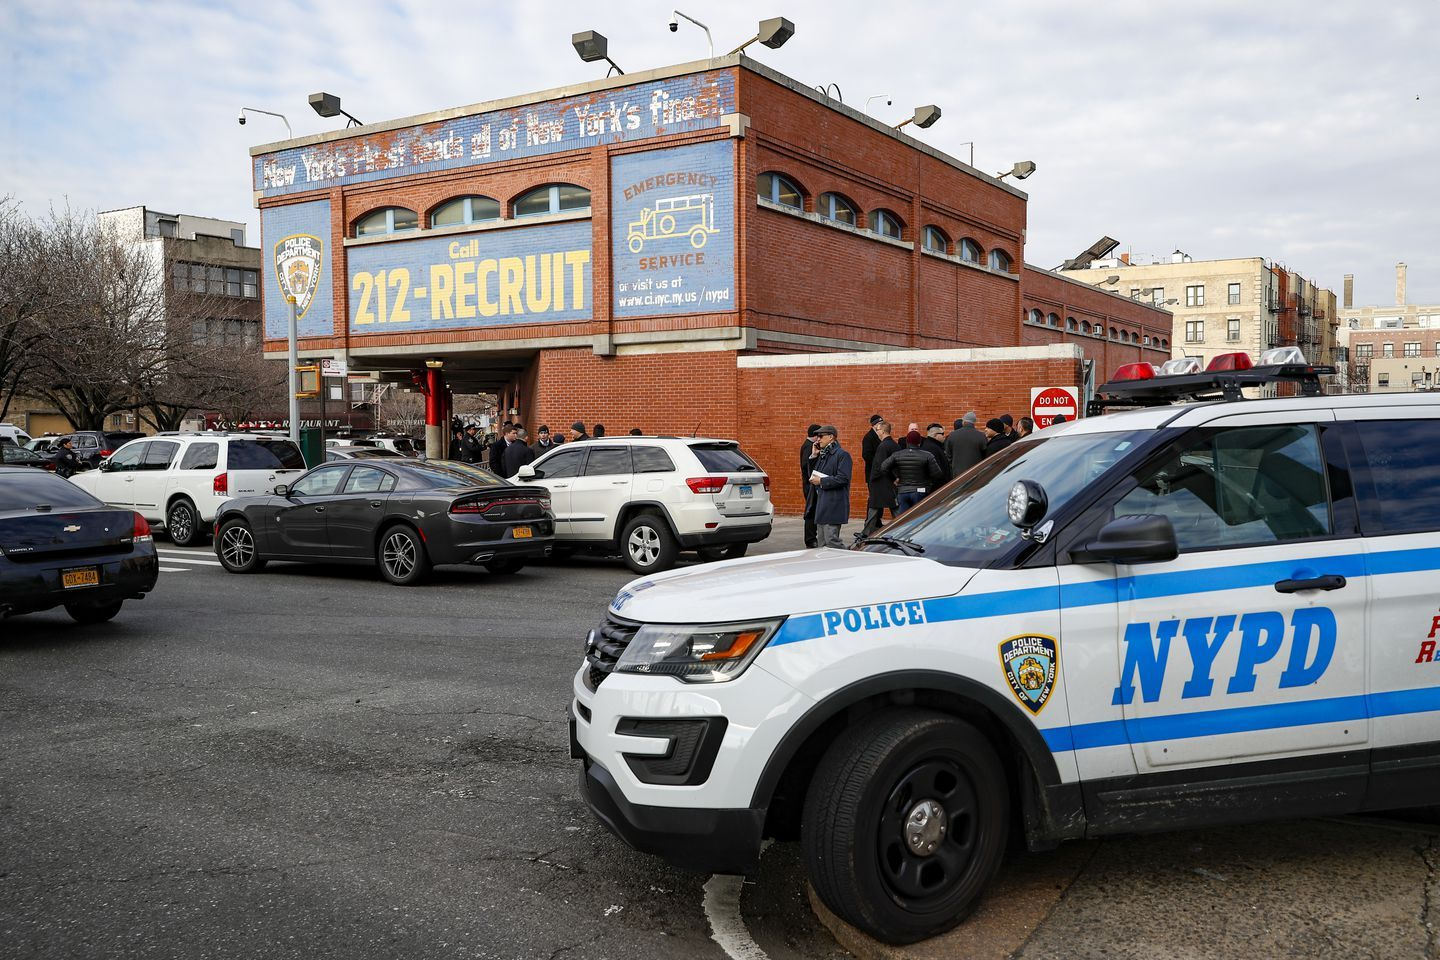 Two Bronx Officers Shot In Separate Focused Attacks Within 12 Hours Https Whomtech Com 2020 02 09 Two Bro In 2020 Police Officer Shot New York Police Police Officer